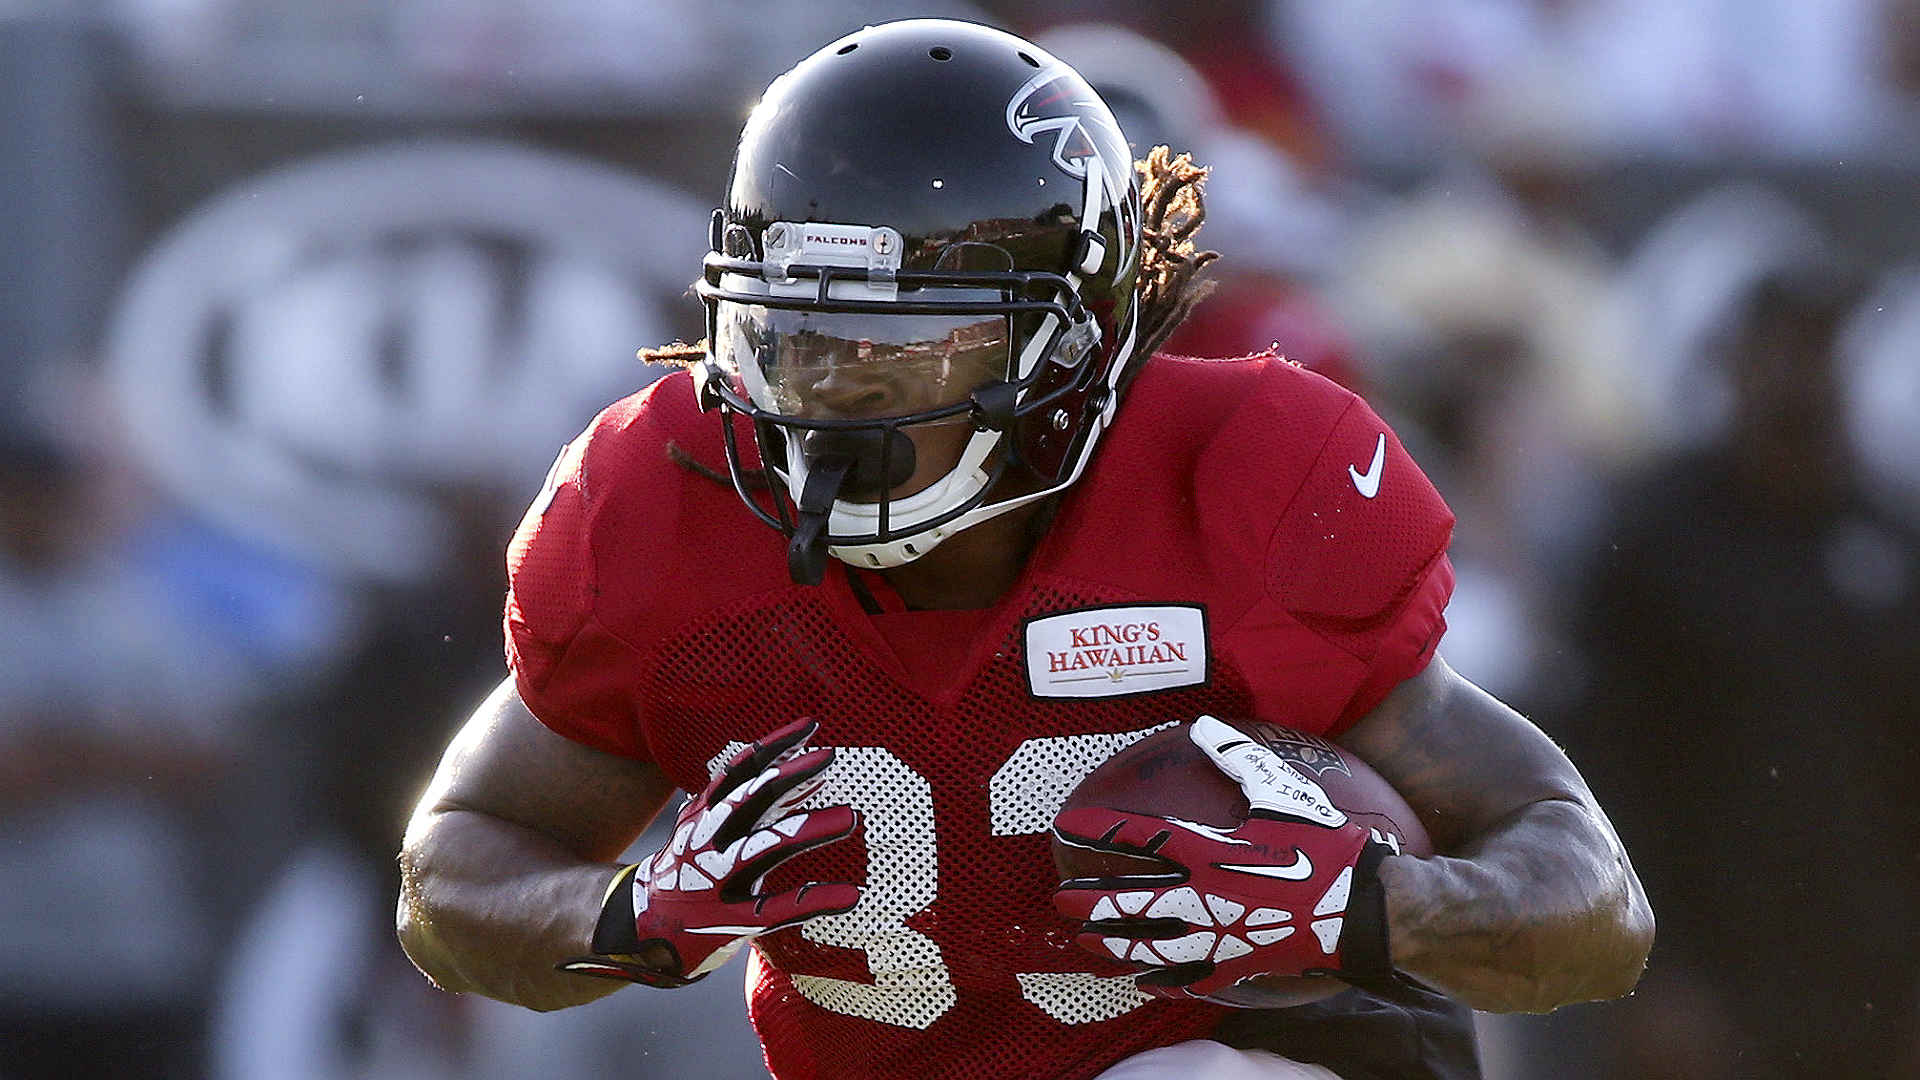 Fantasy football owners must know these RB handcuffs